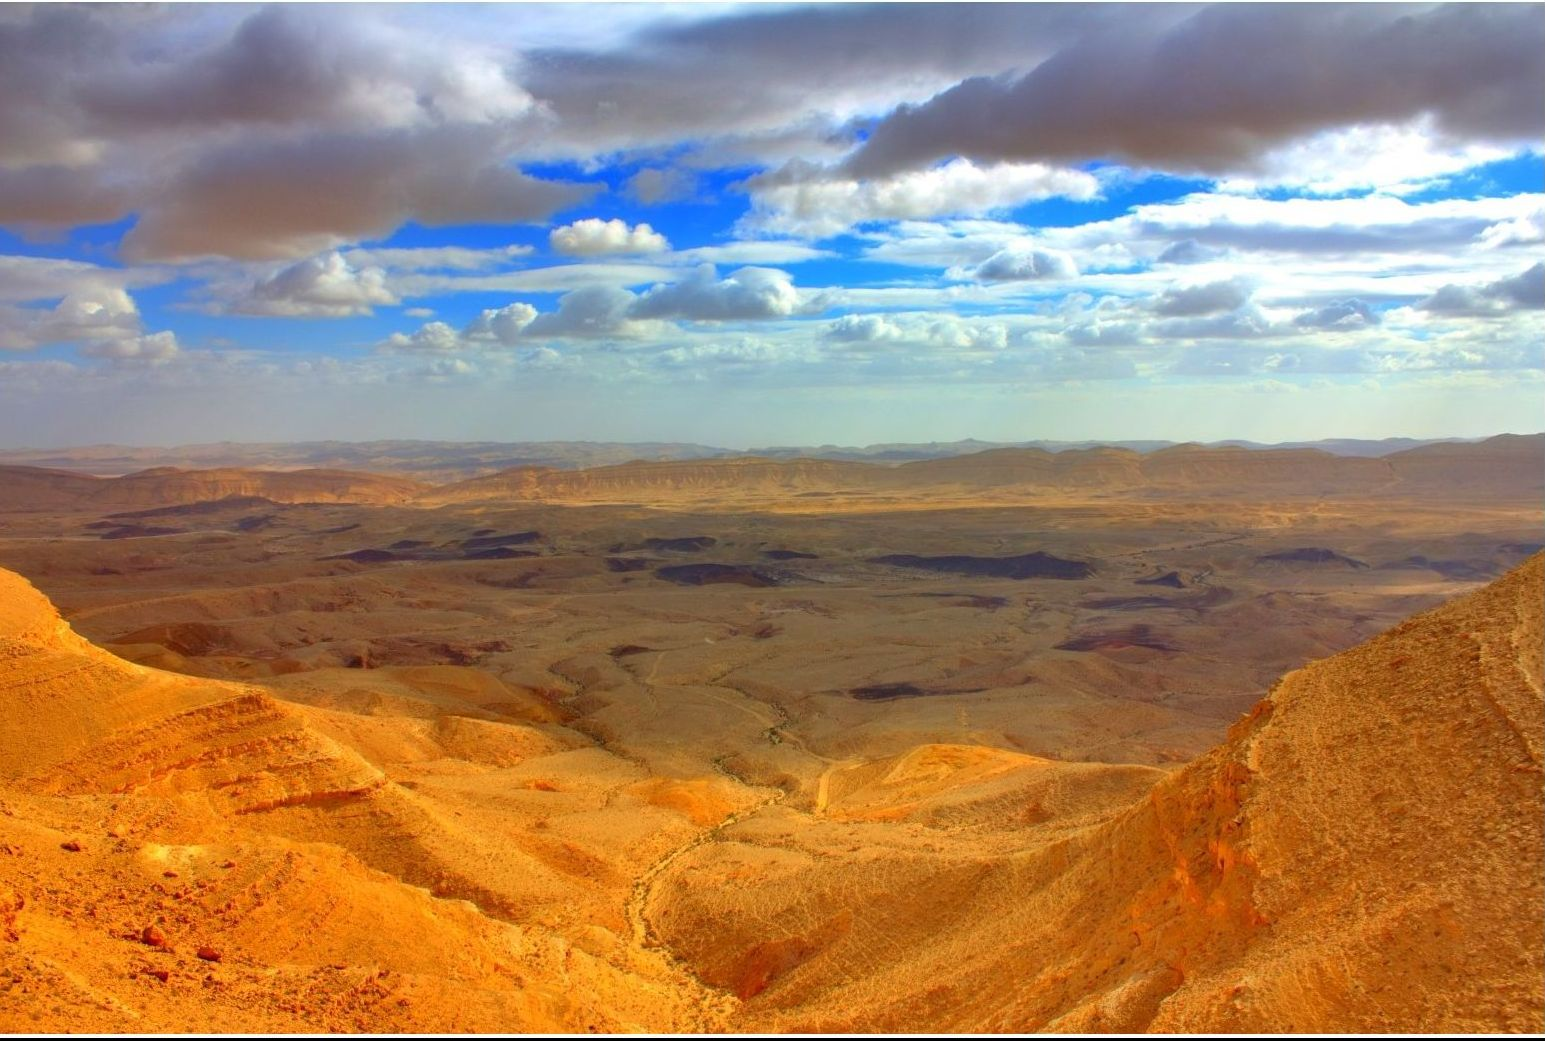 Located in the Negev desert